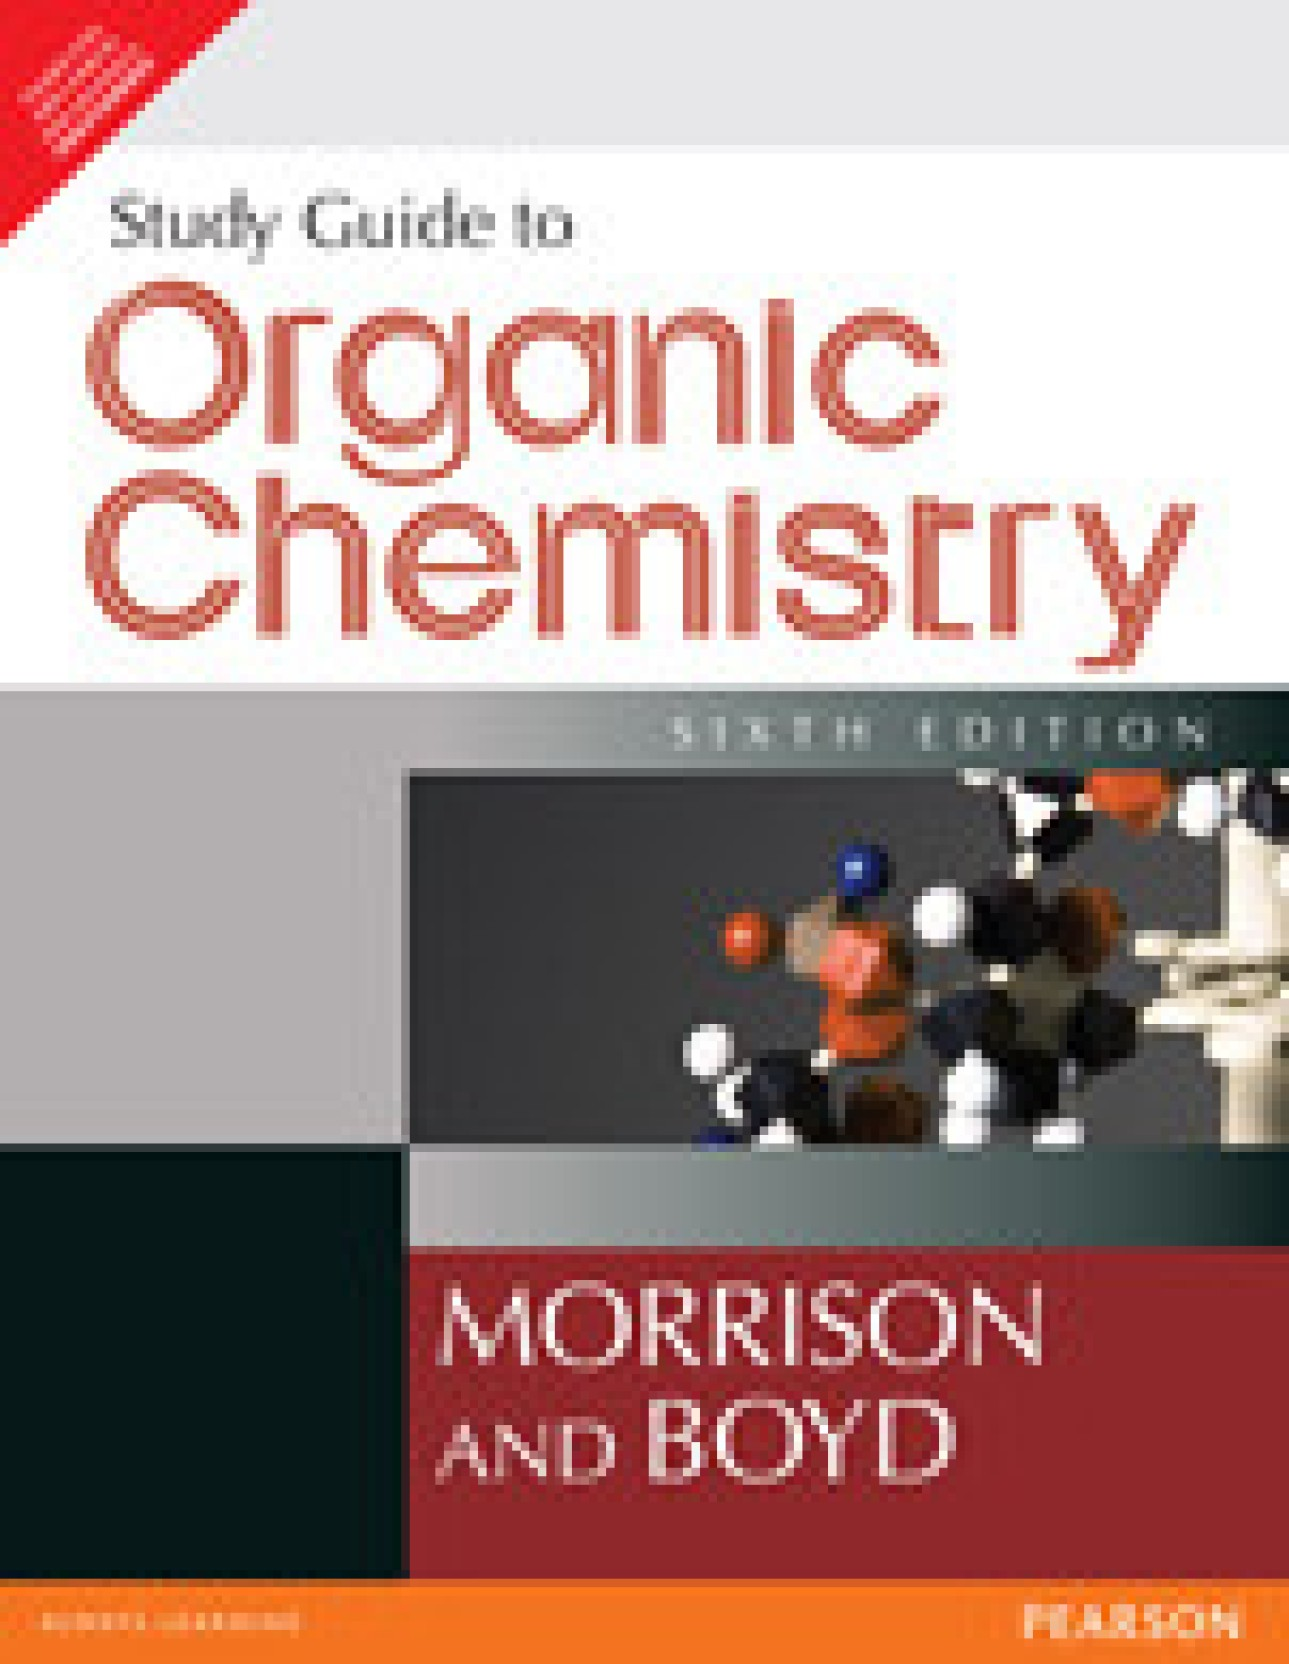 What are some good books for self-studying chemistry? - Quora